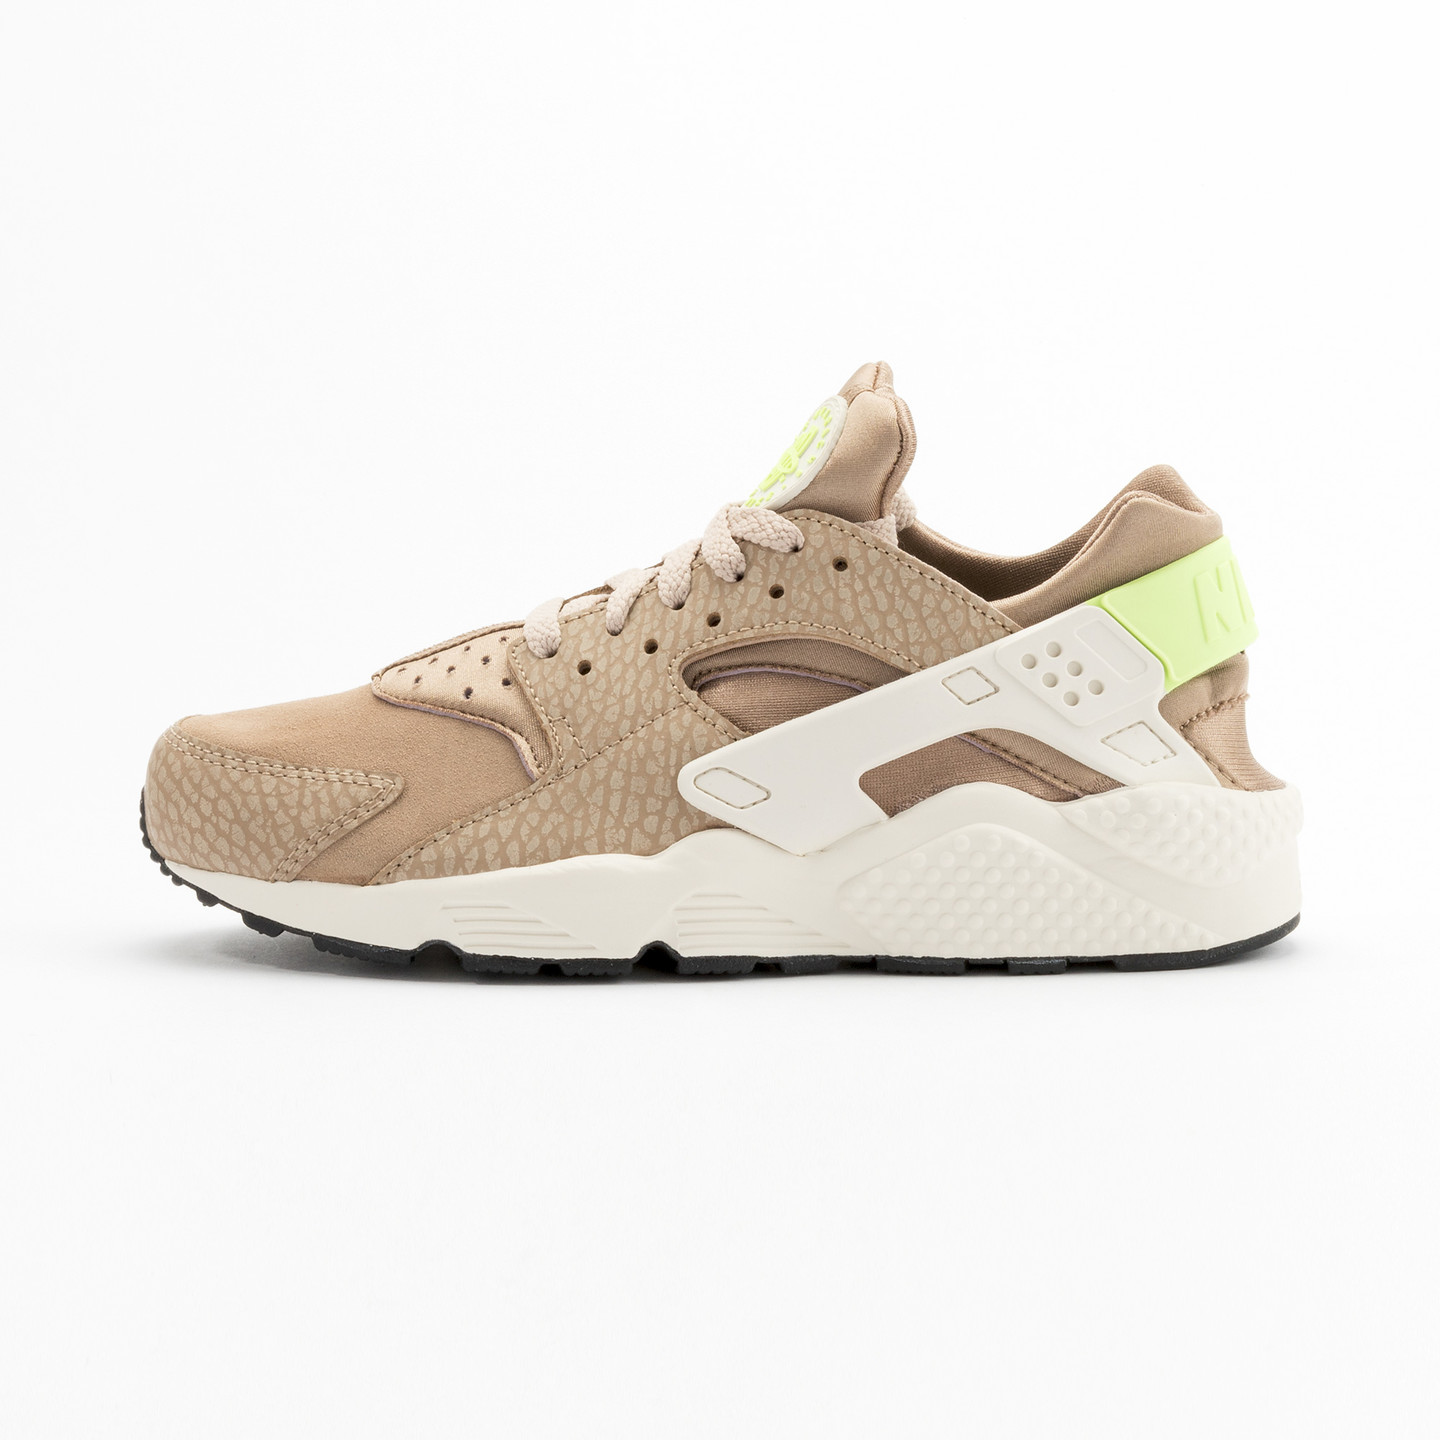 Nike Air Huarache Run Premium Desert Camo / Sea Glass / Ghost Green 704830-203-38.5